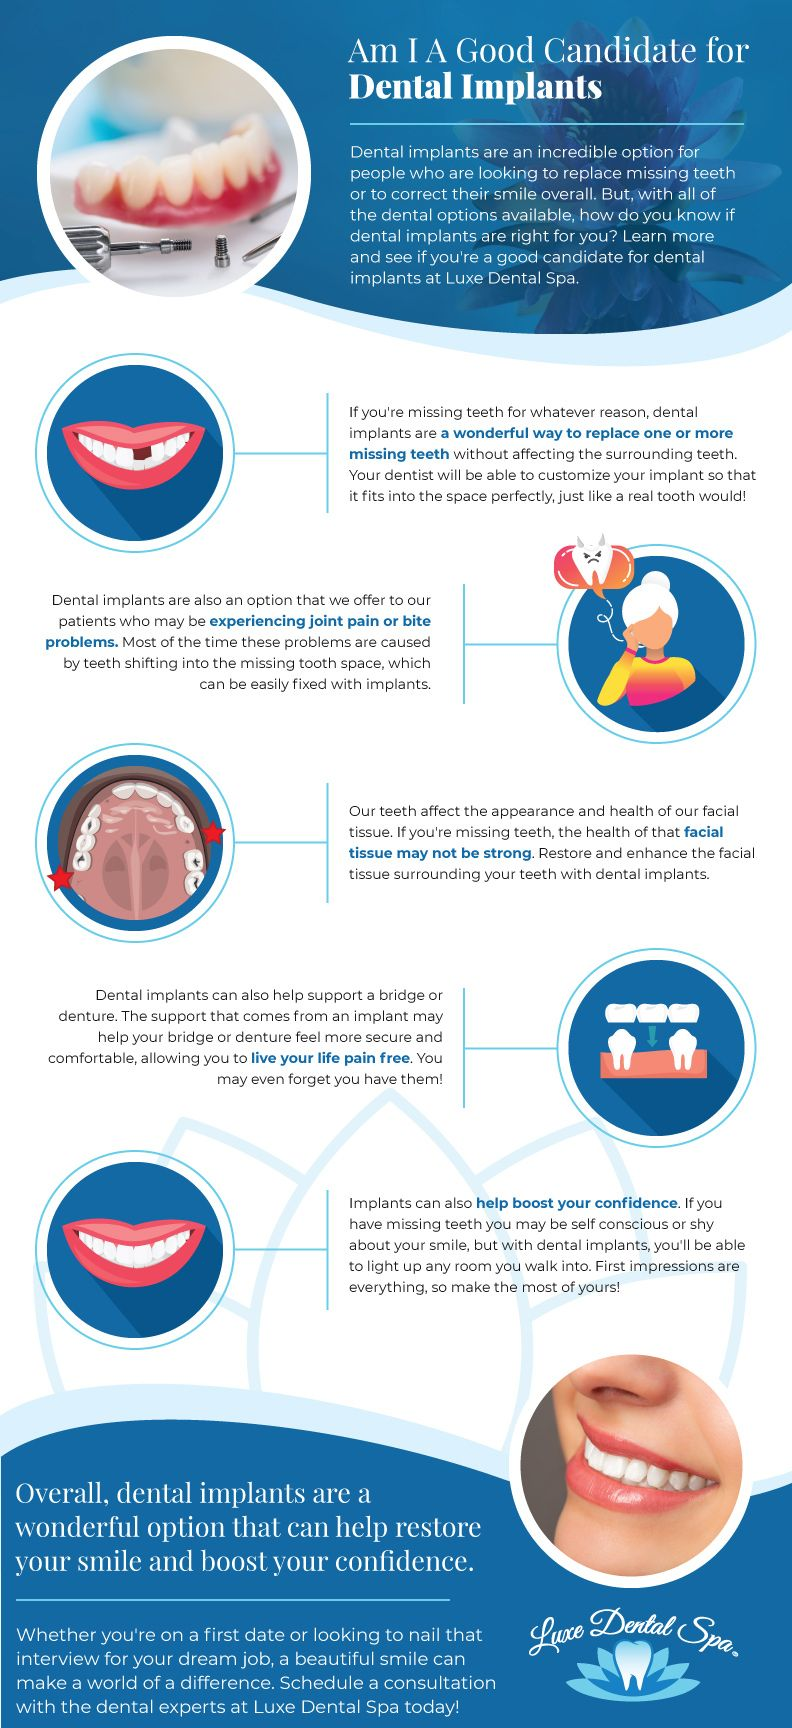 LuxeDentalSpa-Infographic-Am-I-A-Good-Candidate-for-Dental-Implants-5e273ca6d601f.jpg